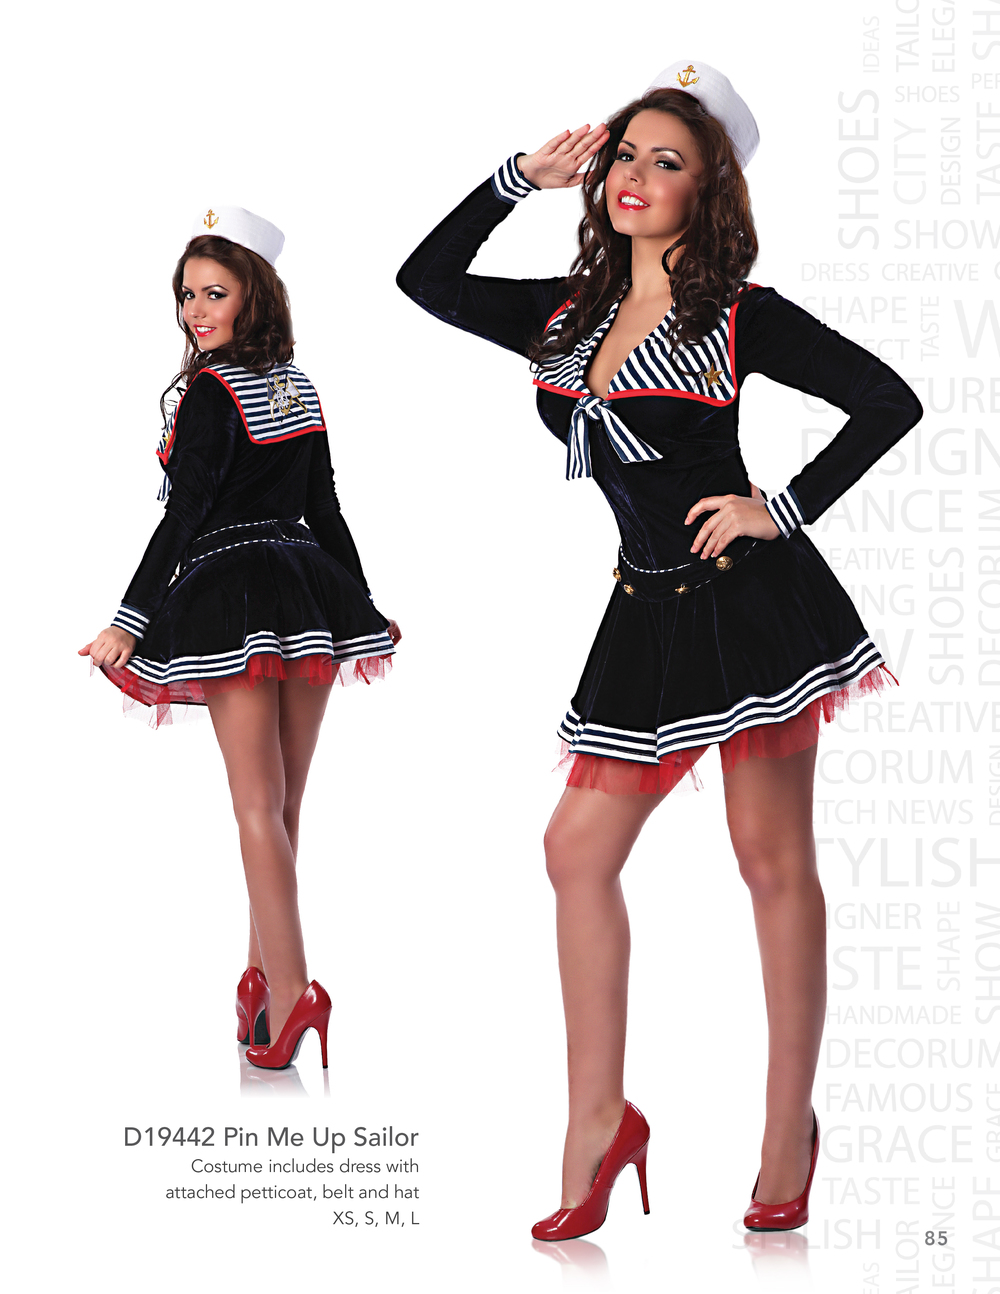 D19442 Pin Me Up Sailor